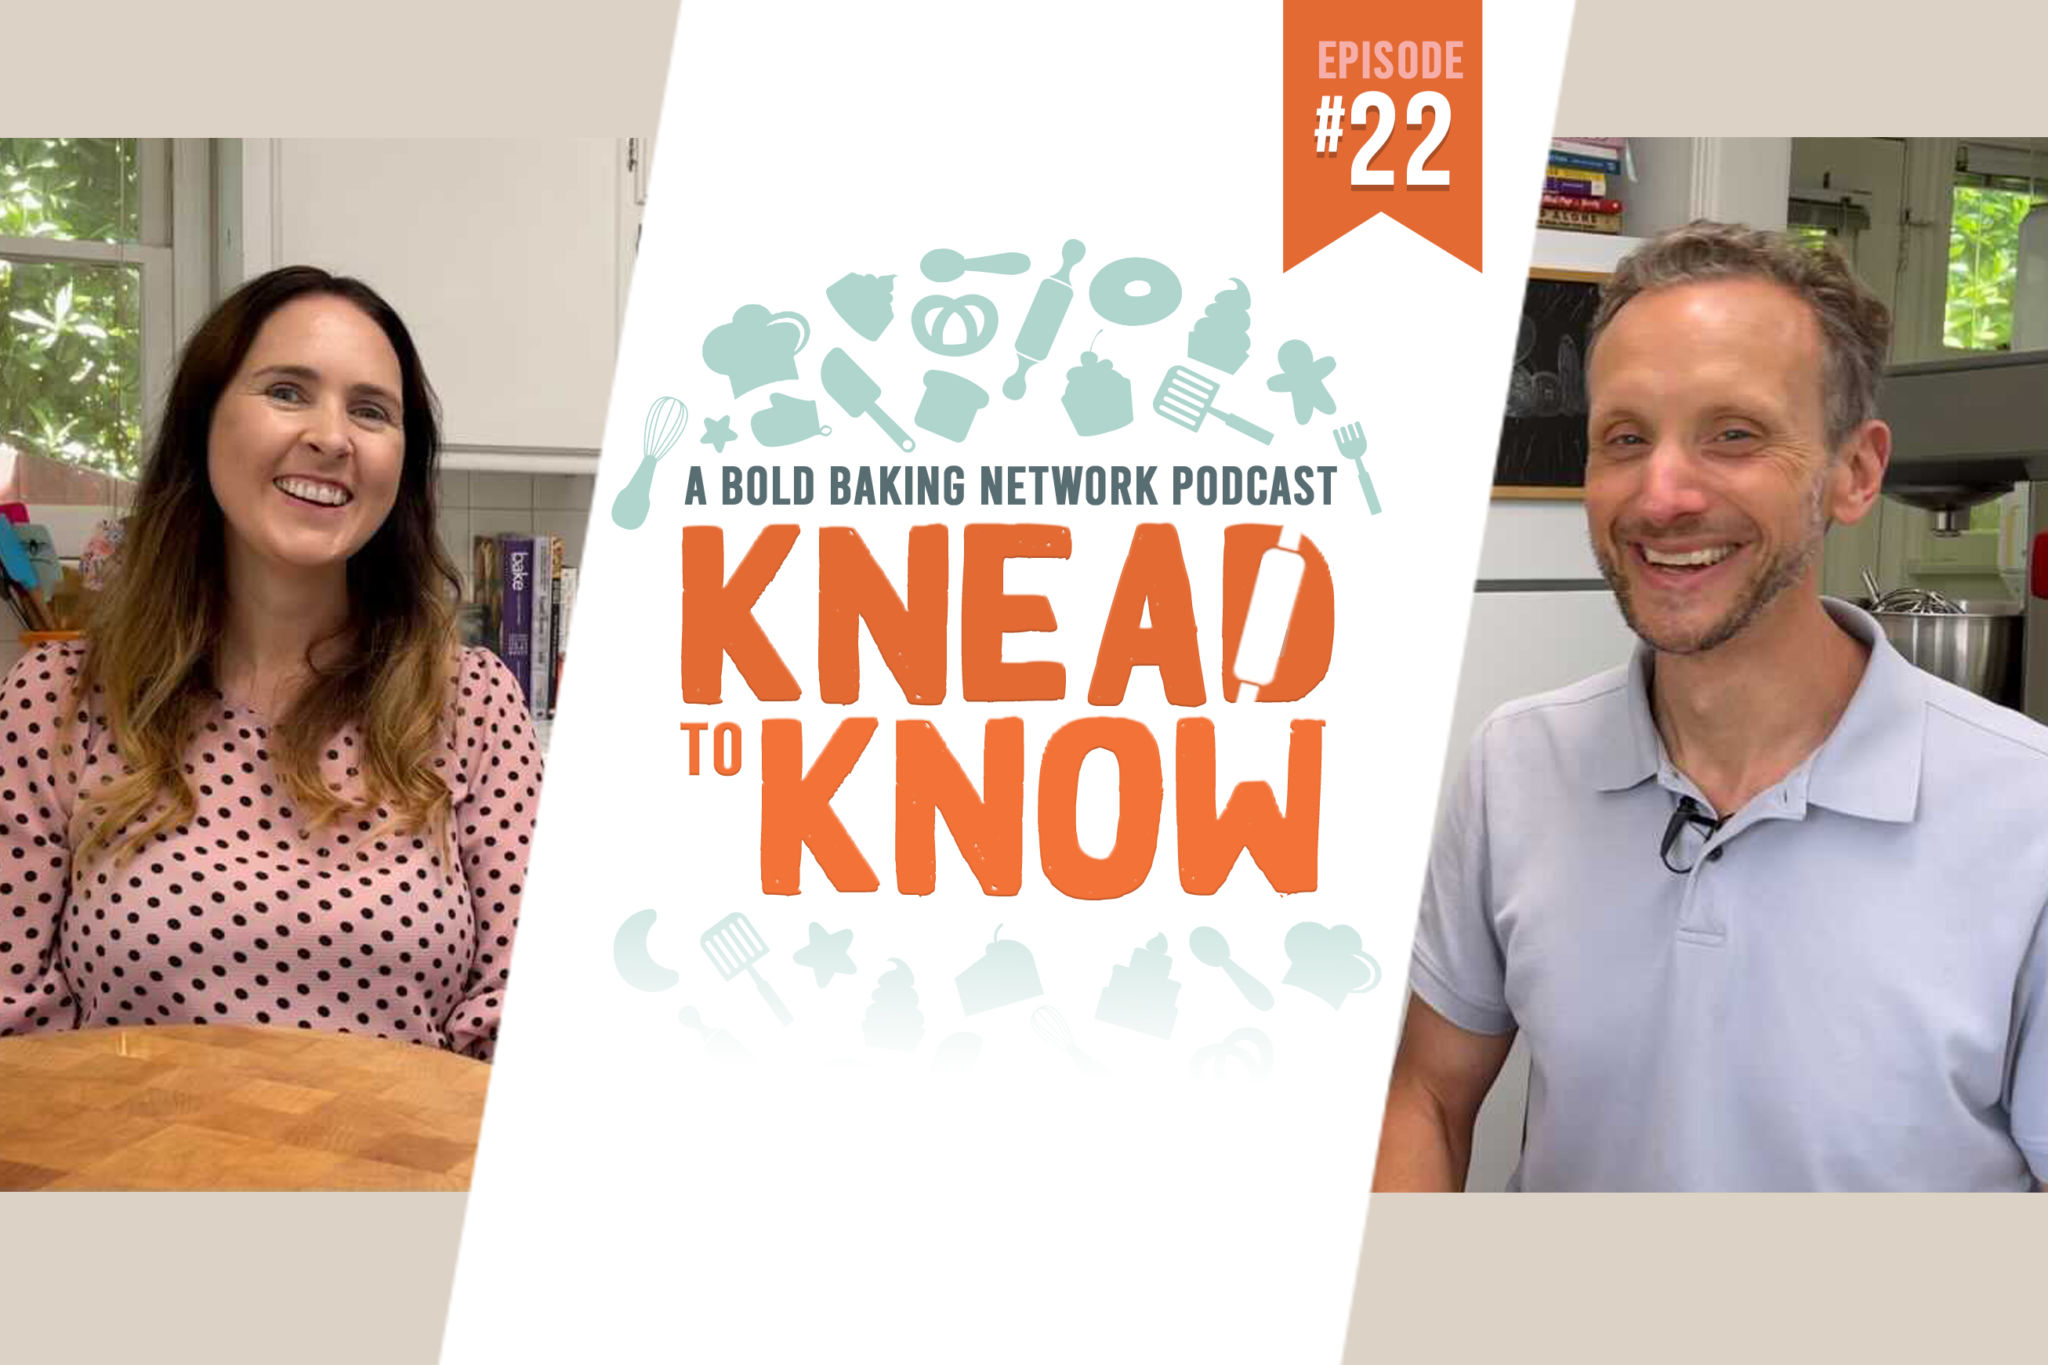 Knead to Know 22 with Gemma Stafford and Kevin Kurtz about rolling pins.